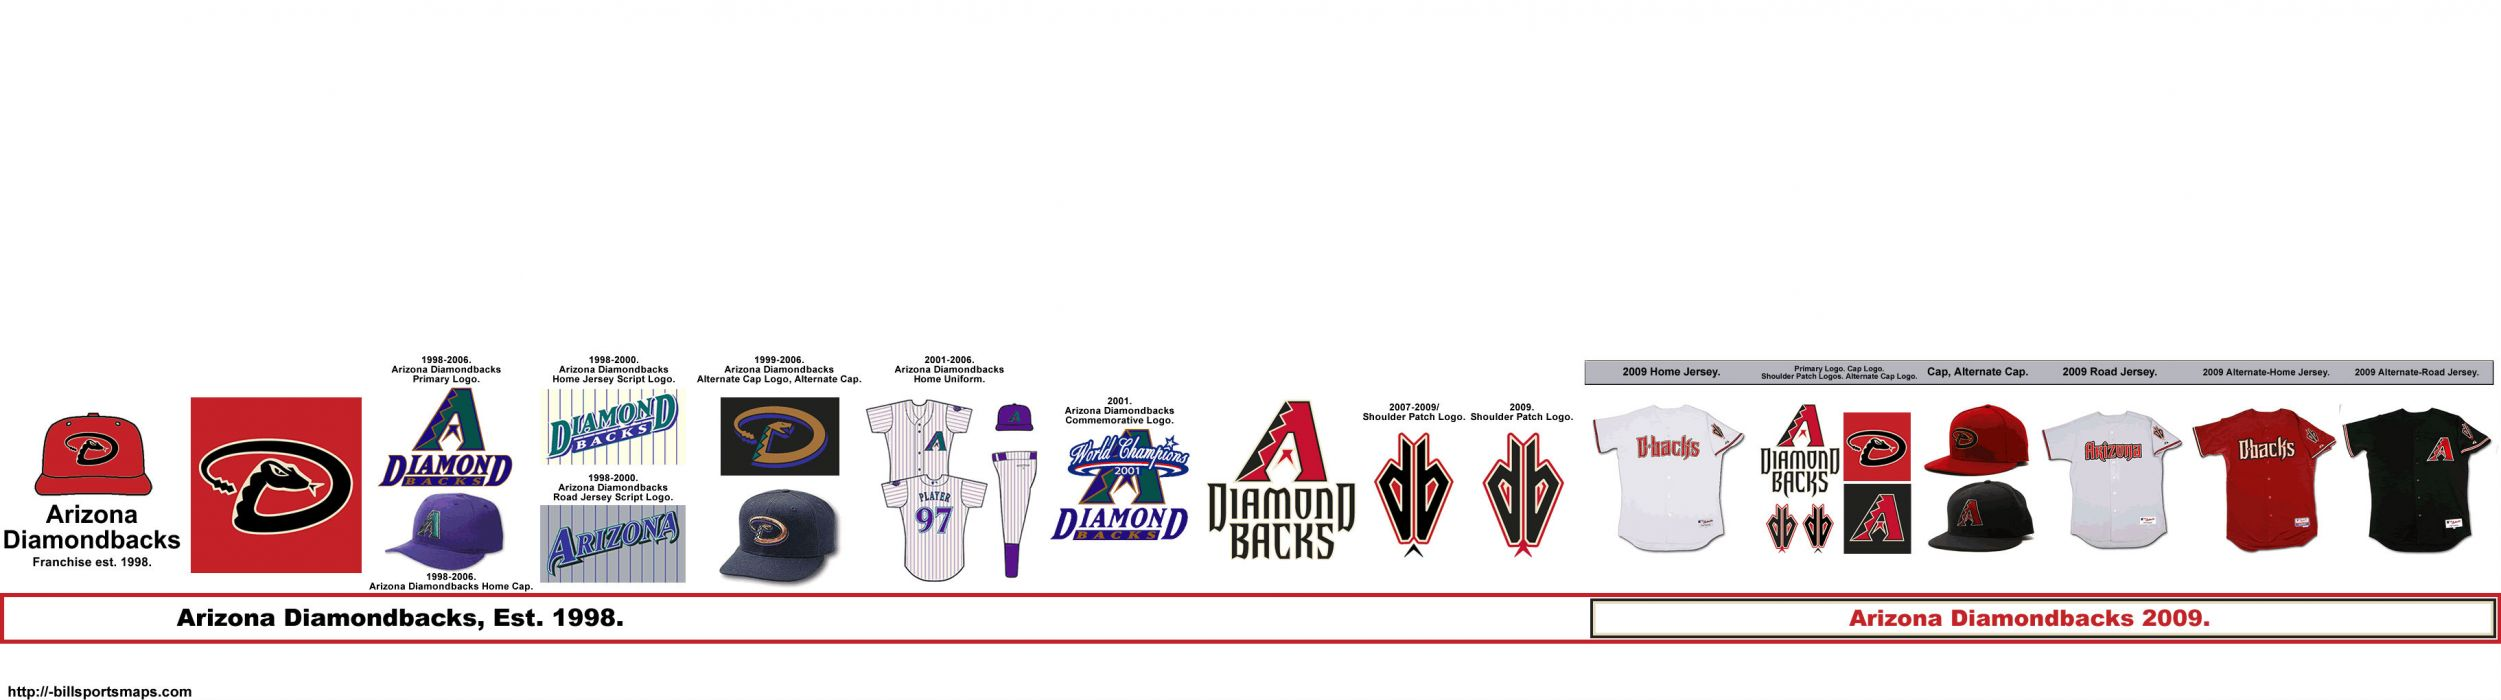 ARIZONA DIAMONDBACKS mlb baseball (39) wallpaper